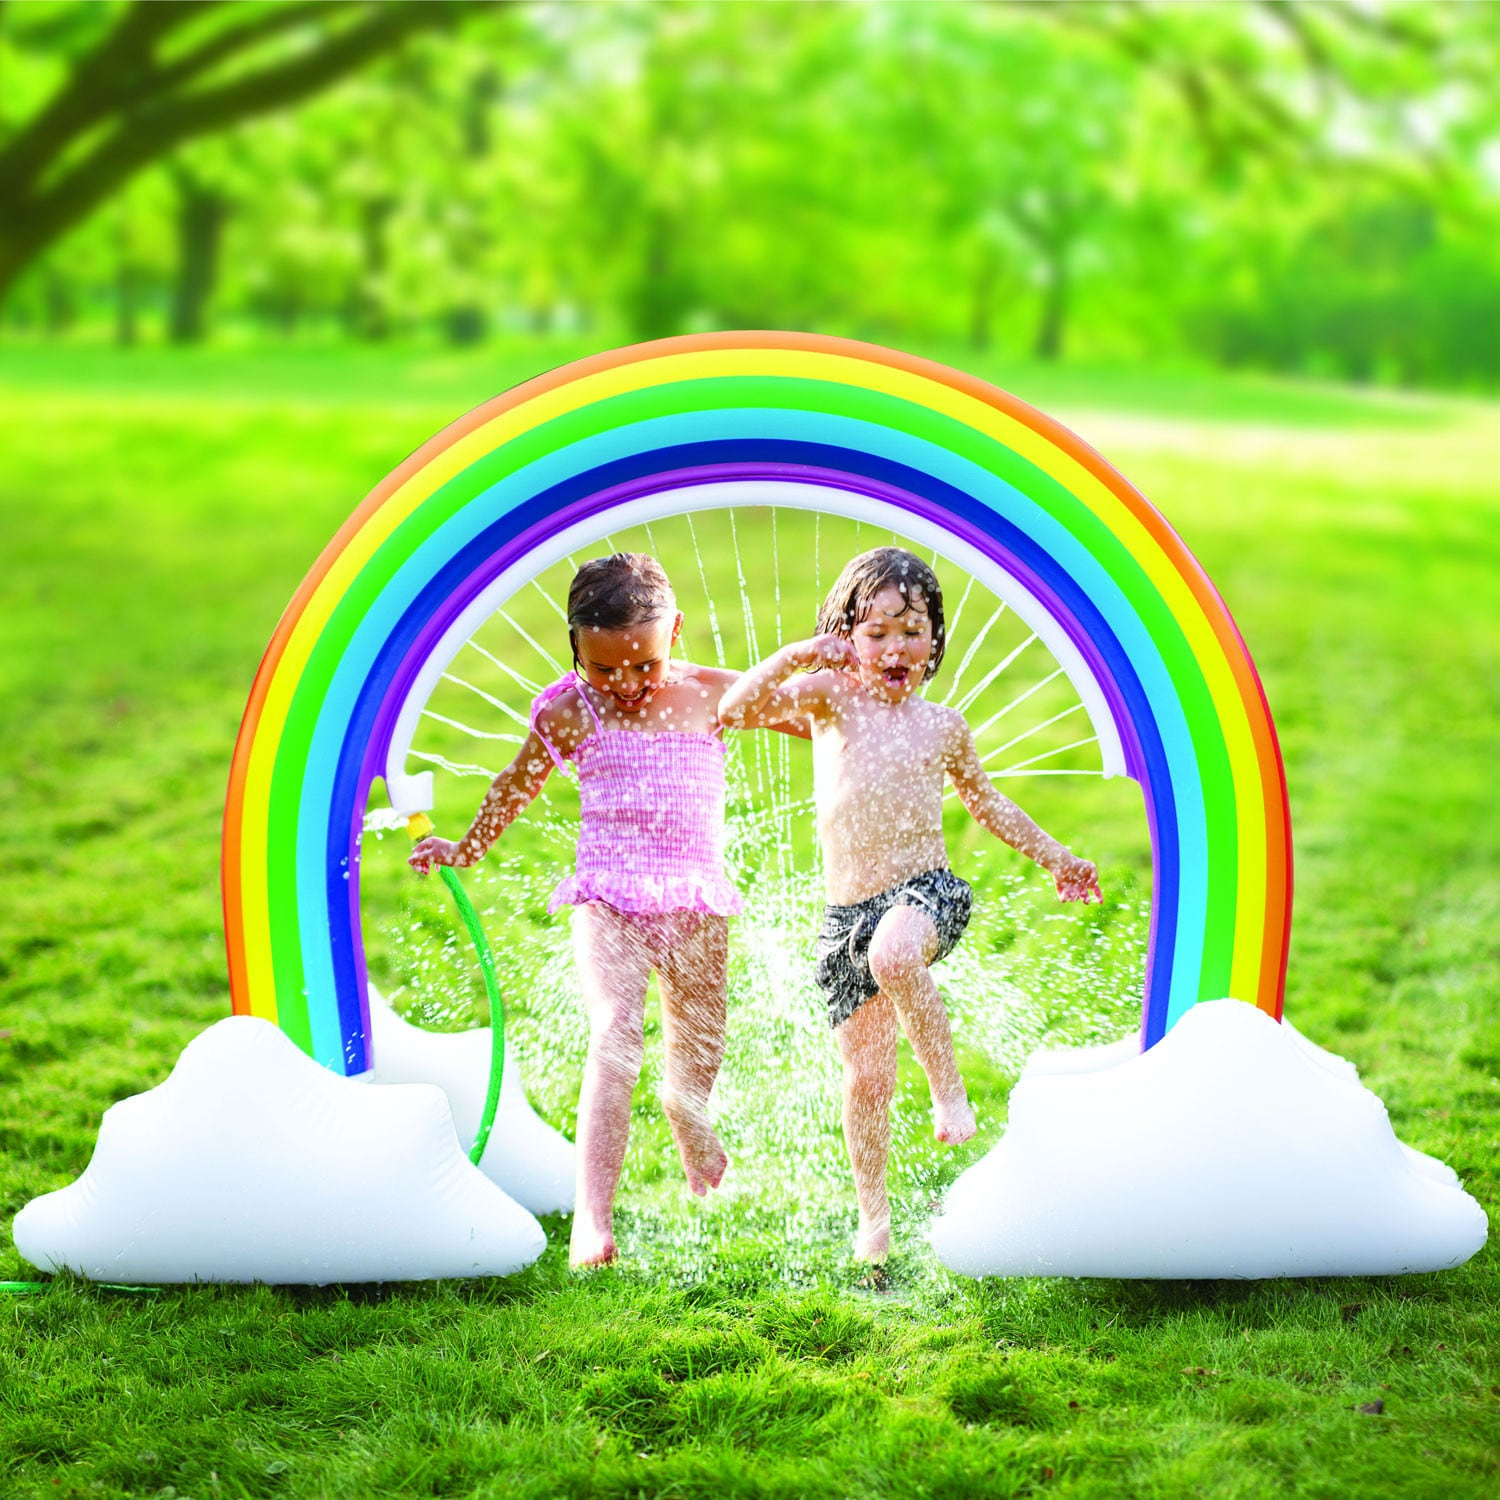 thumbnail 12 - Etna Inflatable Water Sprinklers -Unicorn, Rainbow, Dinosaur Water Toys for Kids